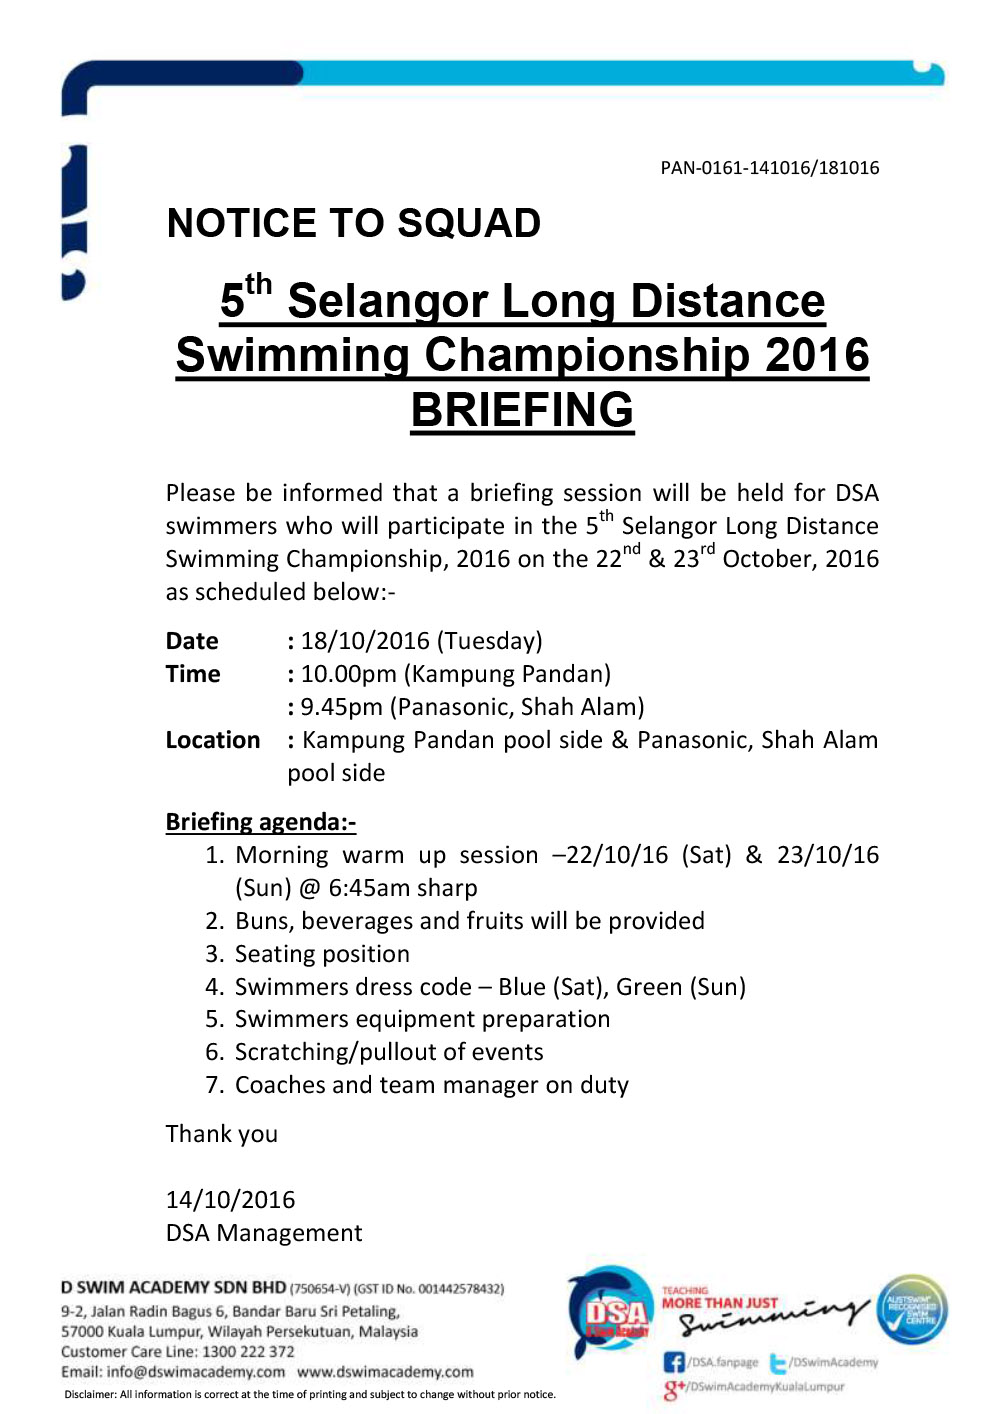 5th Selangor Long Distance - Team Briefing